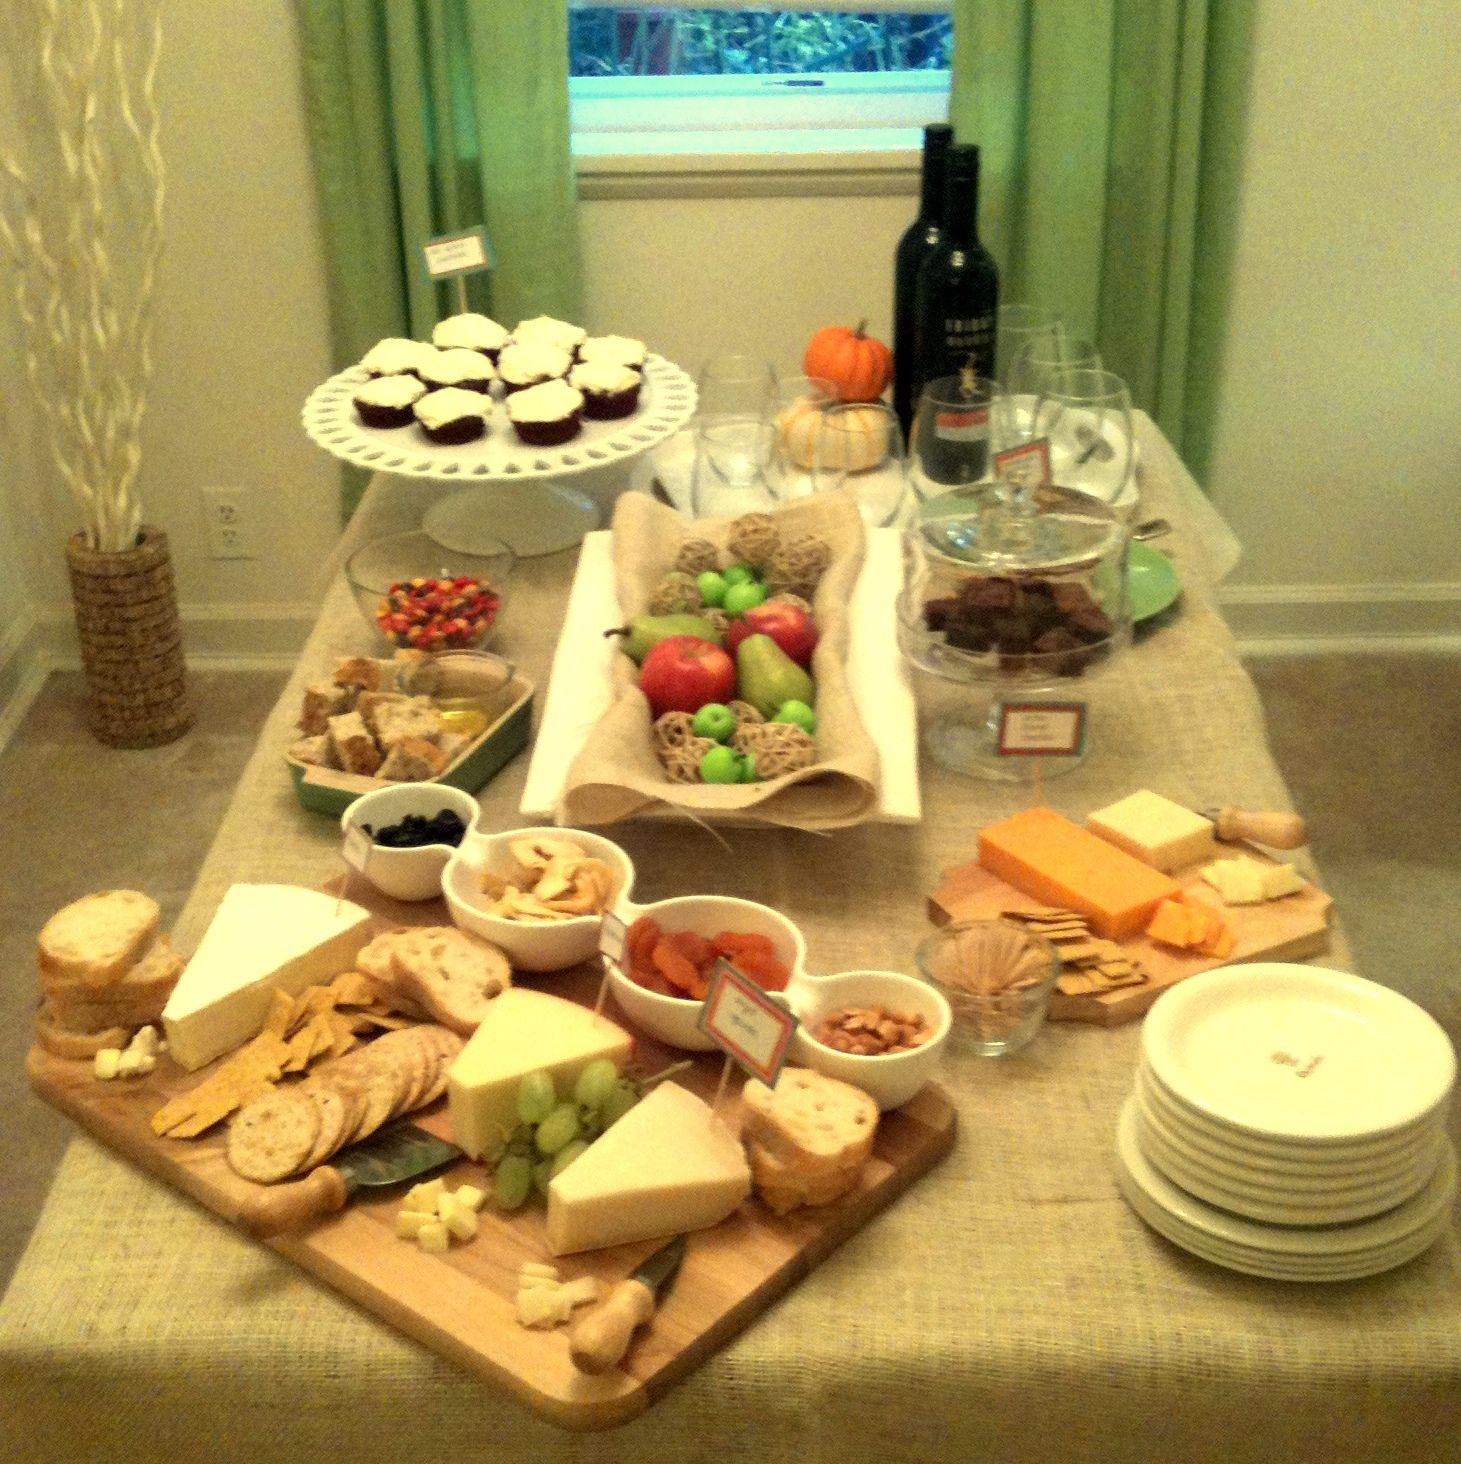 wine and cheese Table Decorations - Bing Images   wine ...